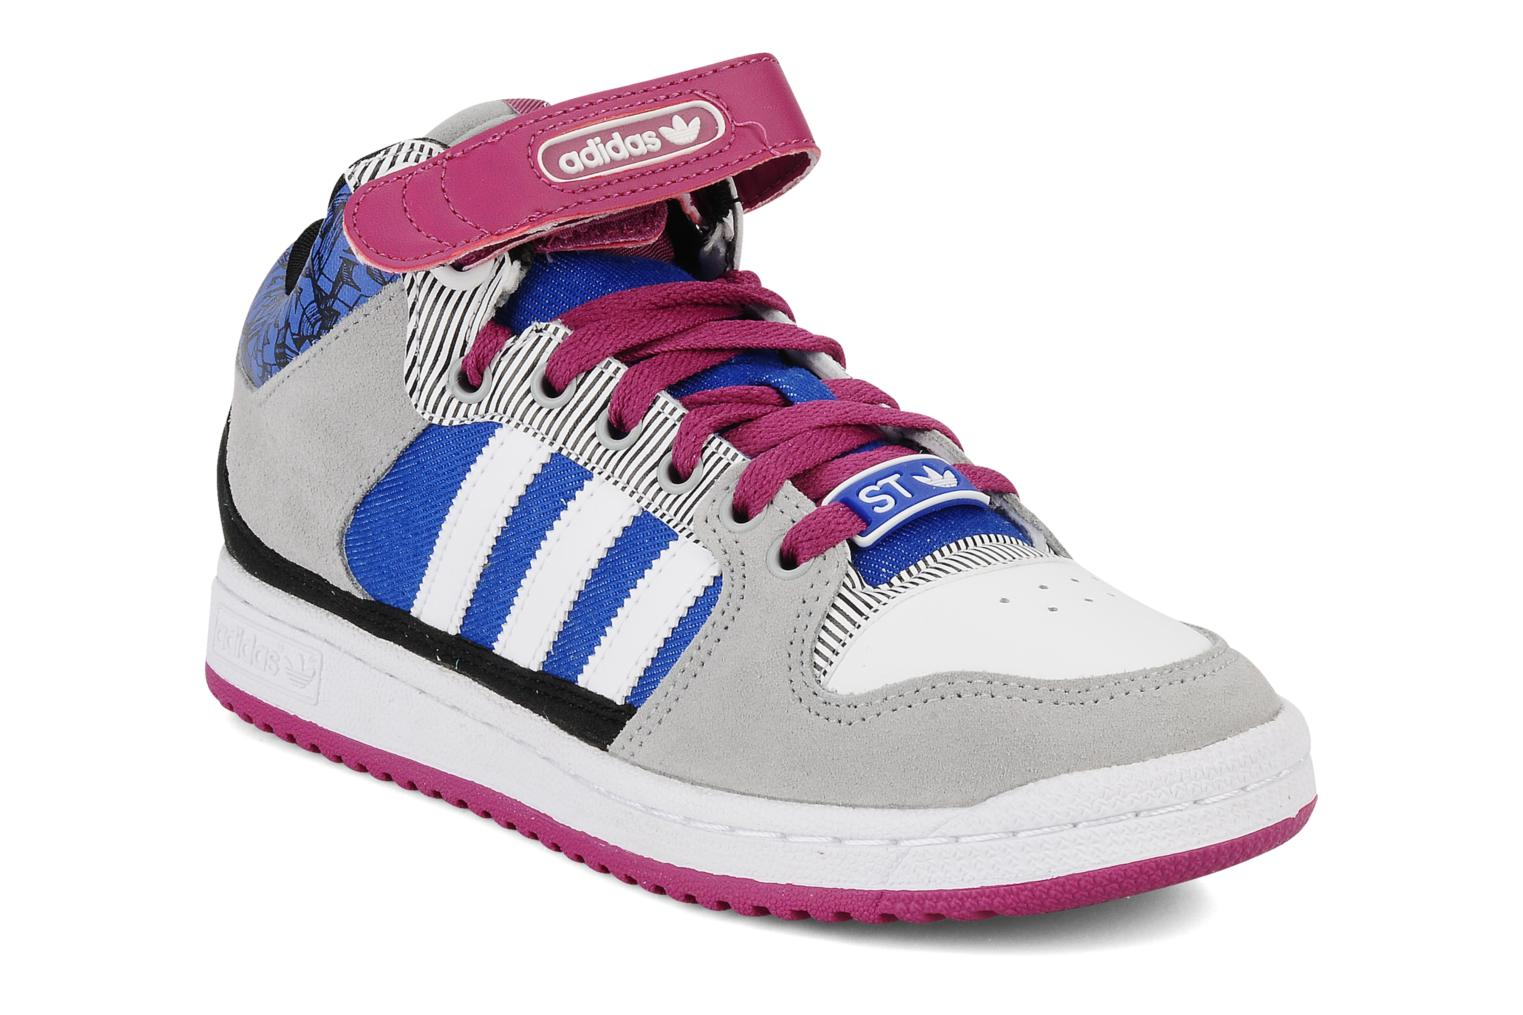 hot sale online a95b4 f3d84 ... Trainers Adidas Originals Decade mid st w White detailed view Pair view  ...